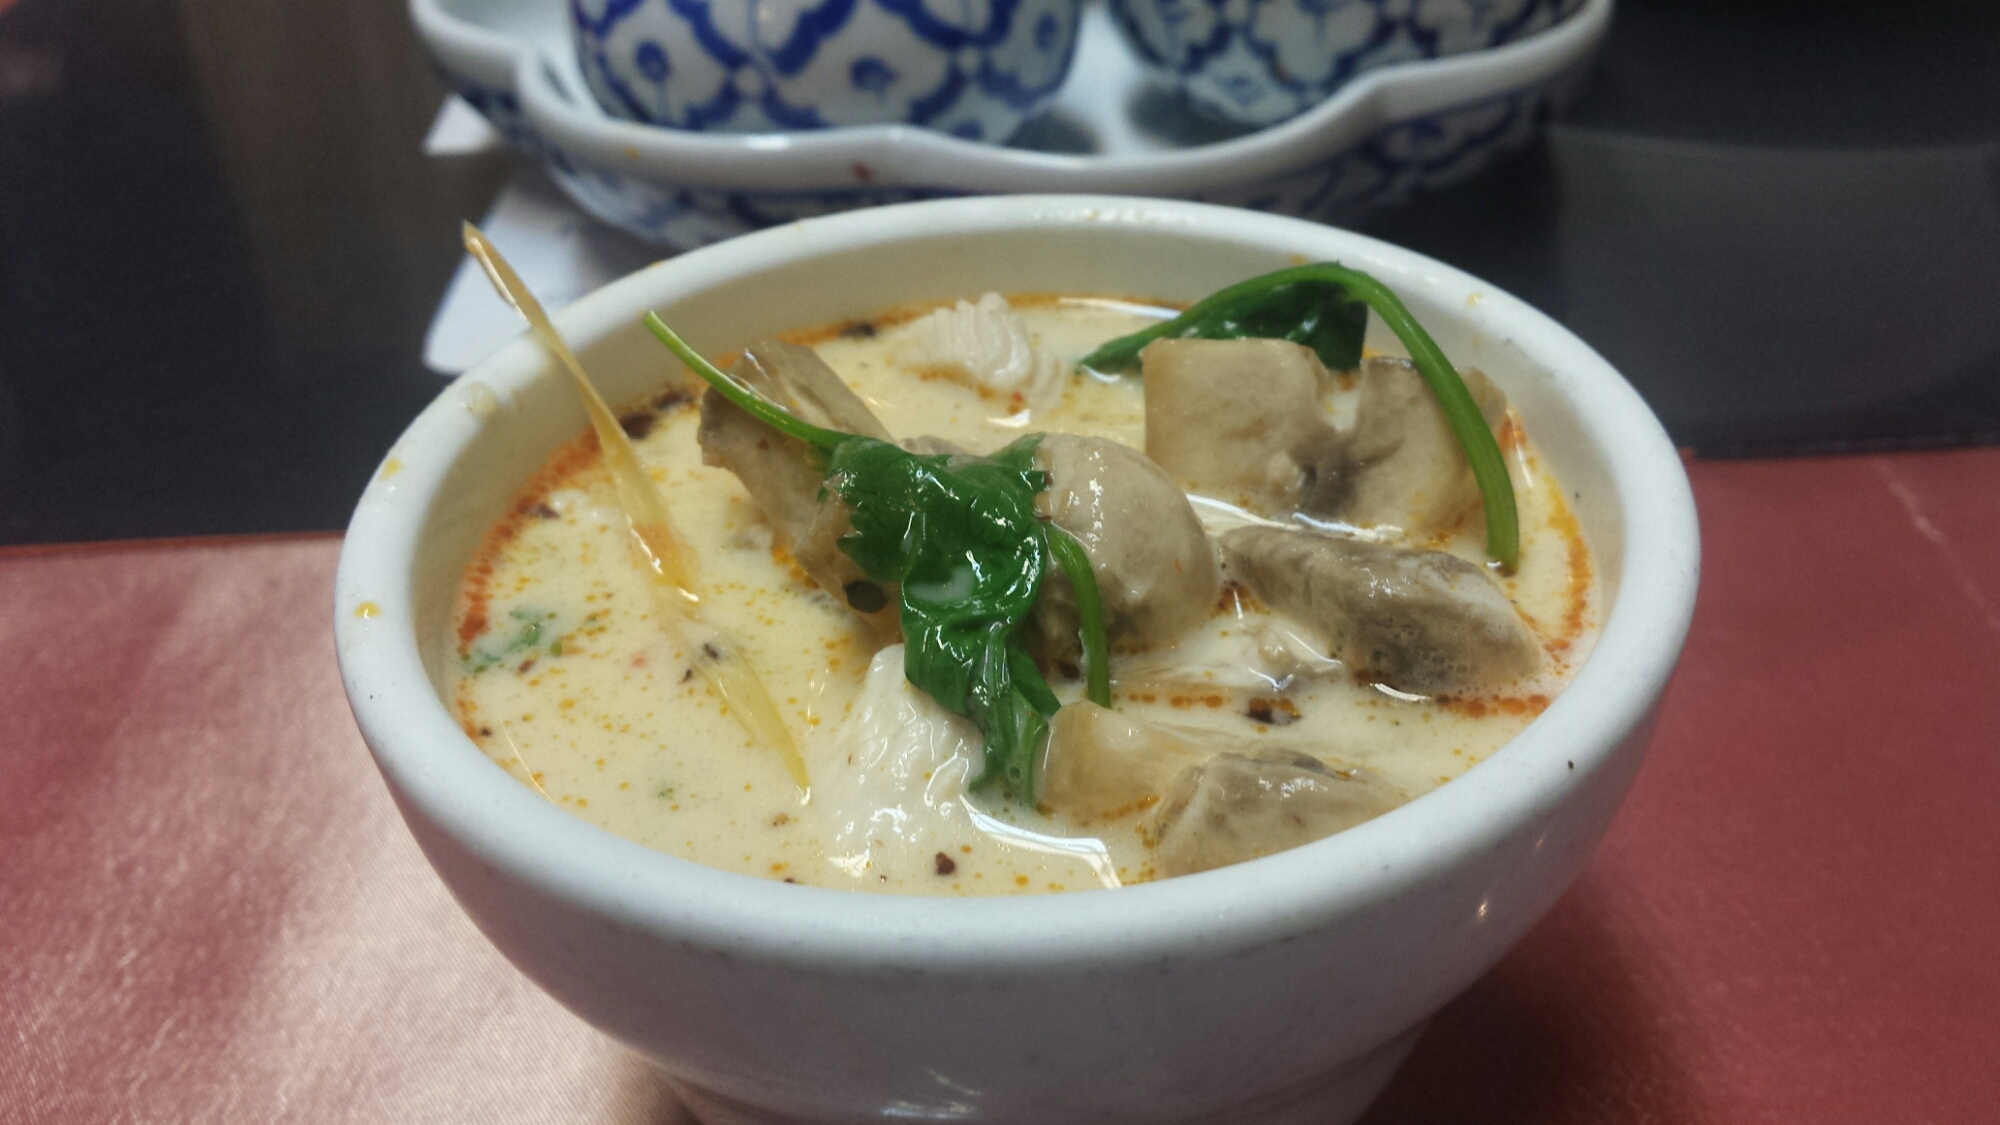 Tom Kha soup; spicy and sour soup in coconut milk, mushrooms, galangal, lemon grass and a touch of lime juice